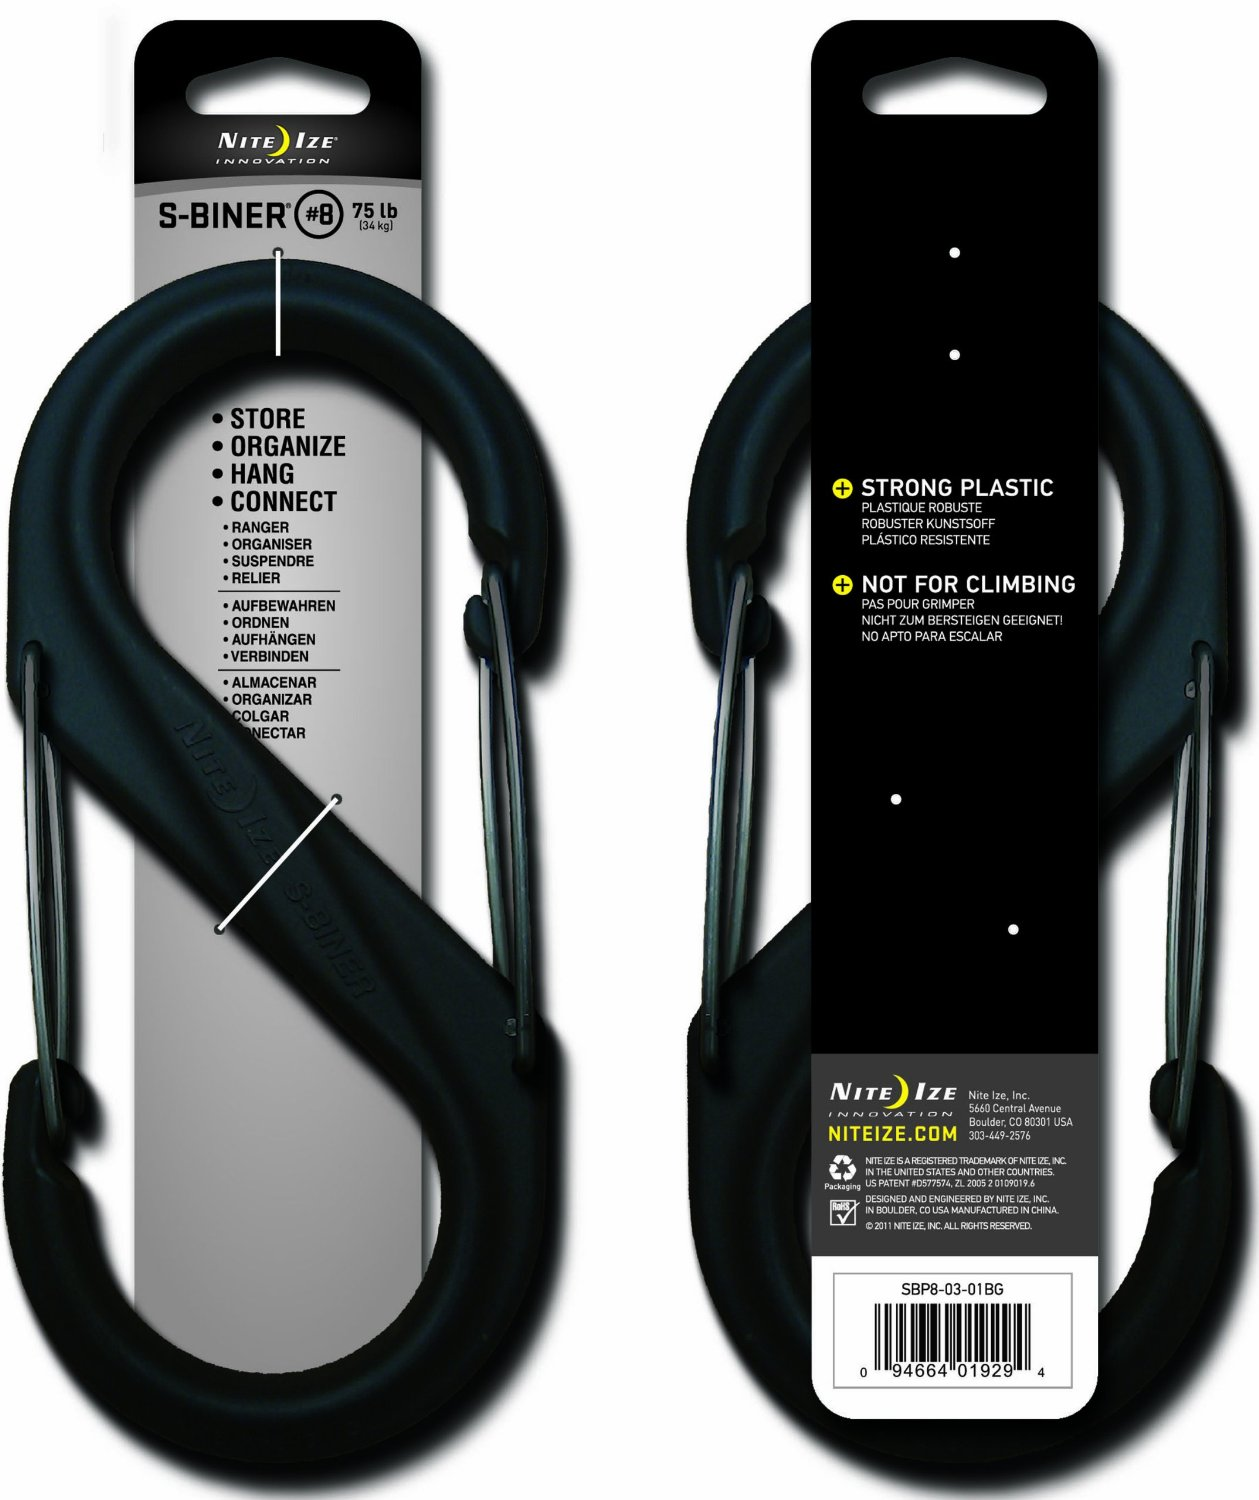 Nite Ize S-Biner - Plastic Double-Gated Carabiner Clip - #8 - Black with Black Gates (SBP8-03-01BG)